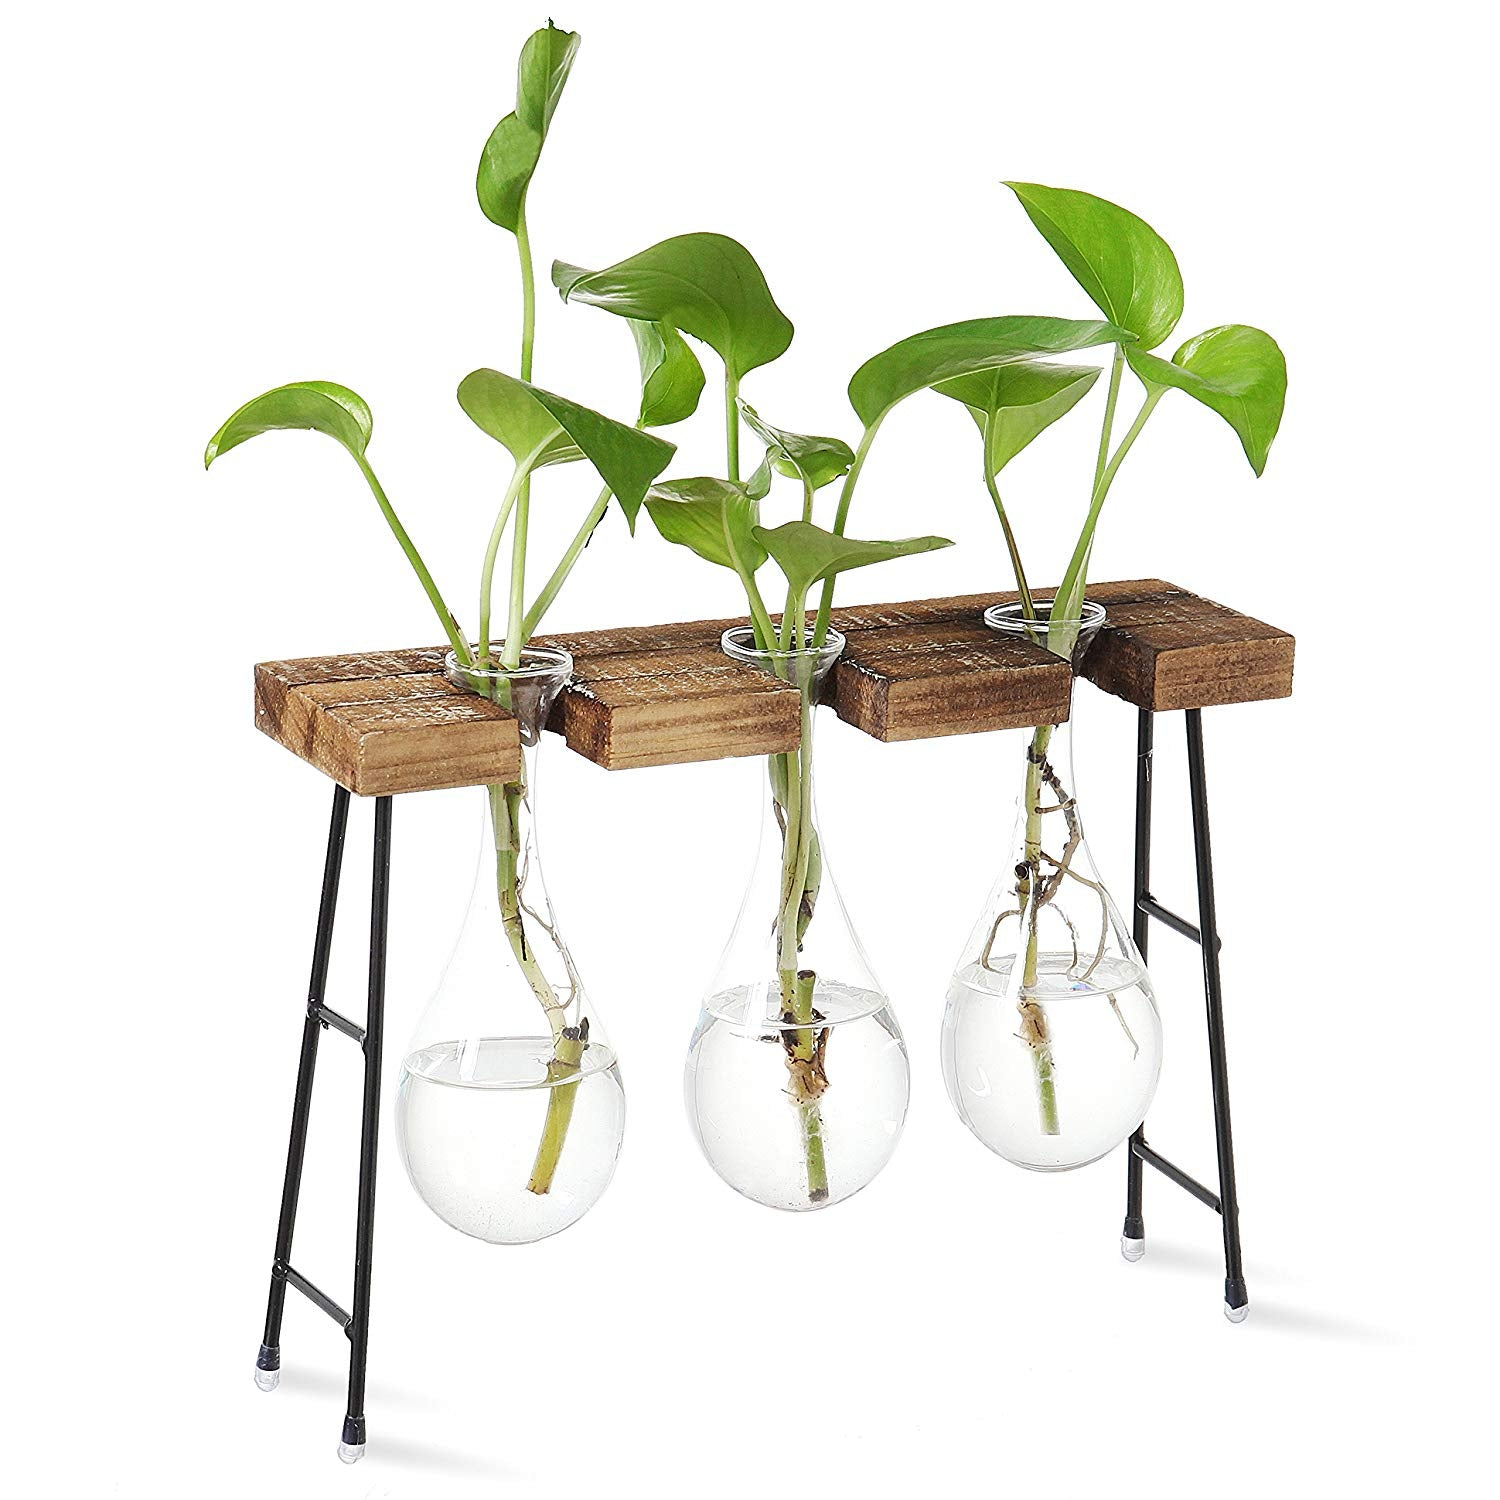 3-Glass Boiling Flask-Style Flower Vases with Rustic Wood & Metal Tabletop Stand